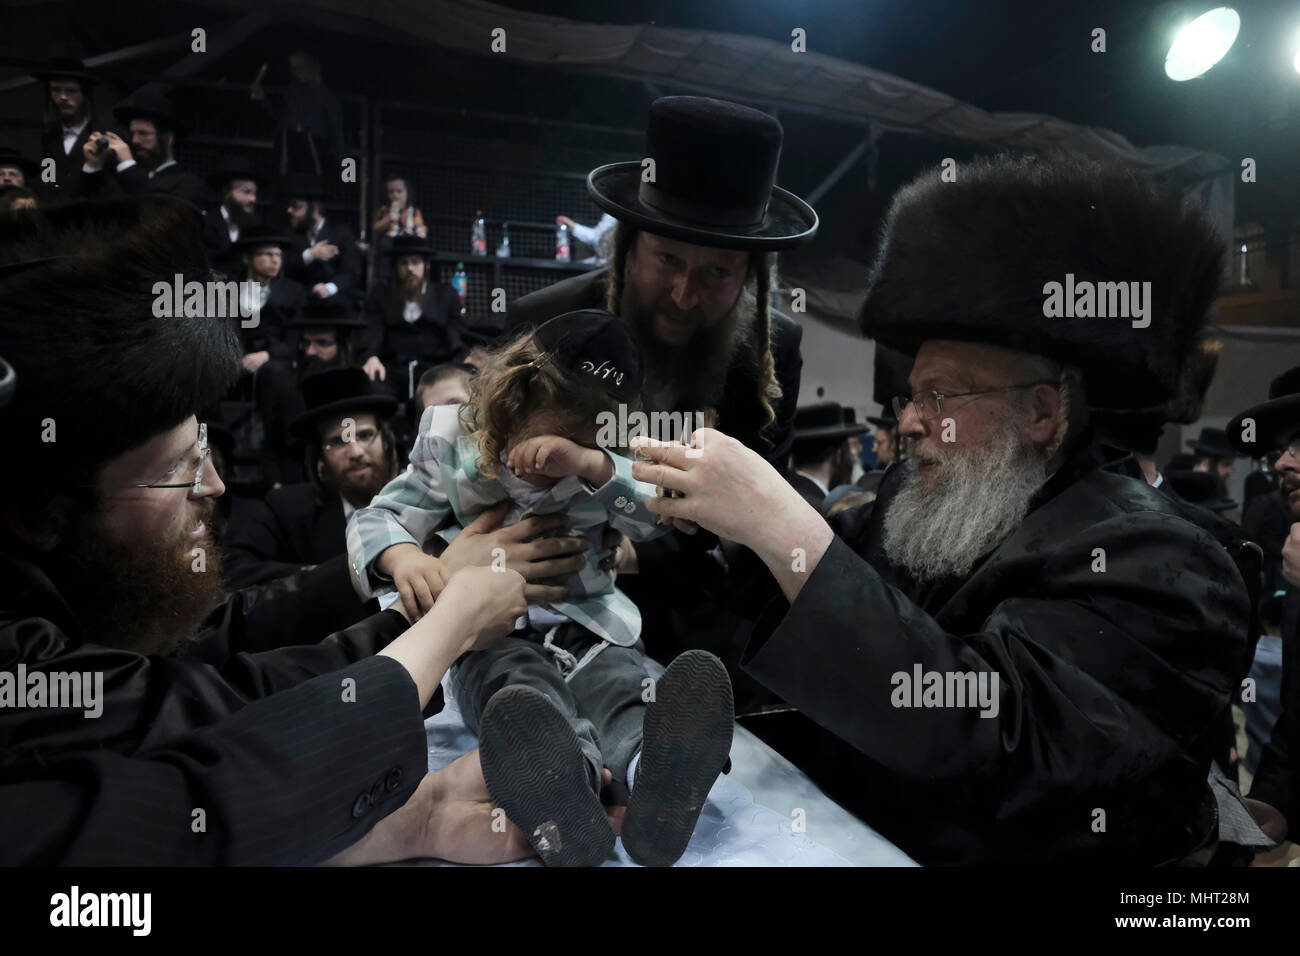 A three-year old Jewish boy takes part in the traditional Halake ceremony, a first hair cut from the Rabbi of the Pinsk-Karlin Hassidic dynasty in Geula religious neighborhood during the celebration of Lag BaOmer holiday which marks the celebration, interpreted by some as anniversary of death of Rabbi Shimon bar Yochai, one of Judaism's great sages some 1800 years ago and the day on which he revealed the deepest secrets of kabbalah a landmark text of Jewish mysticism - Stock Image